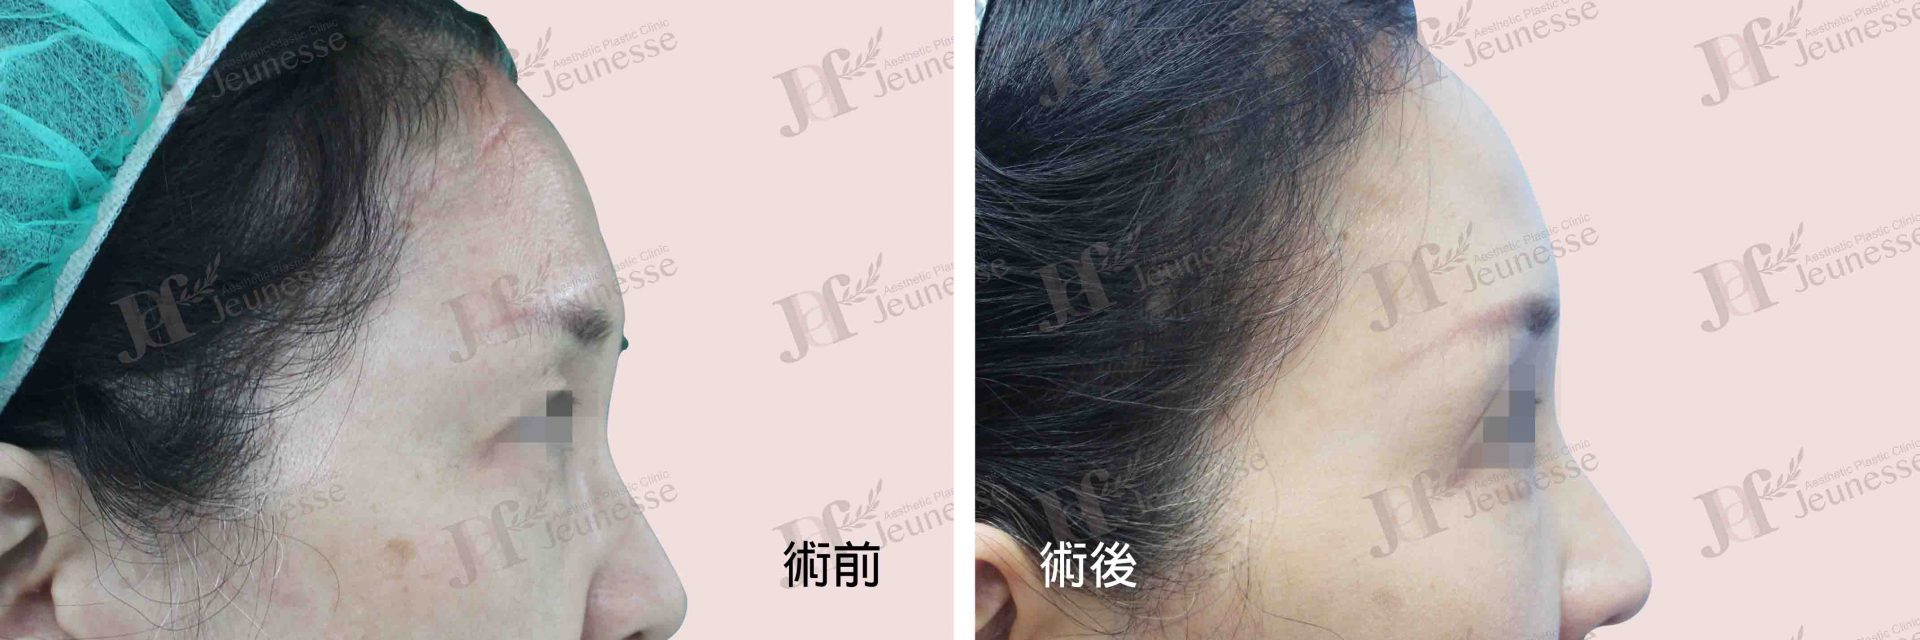 Forehead lifting 側面-浮水印